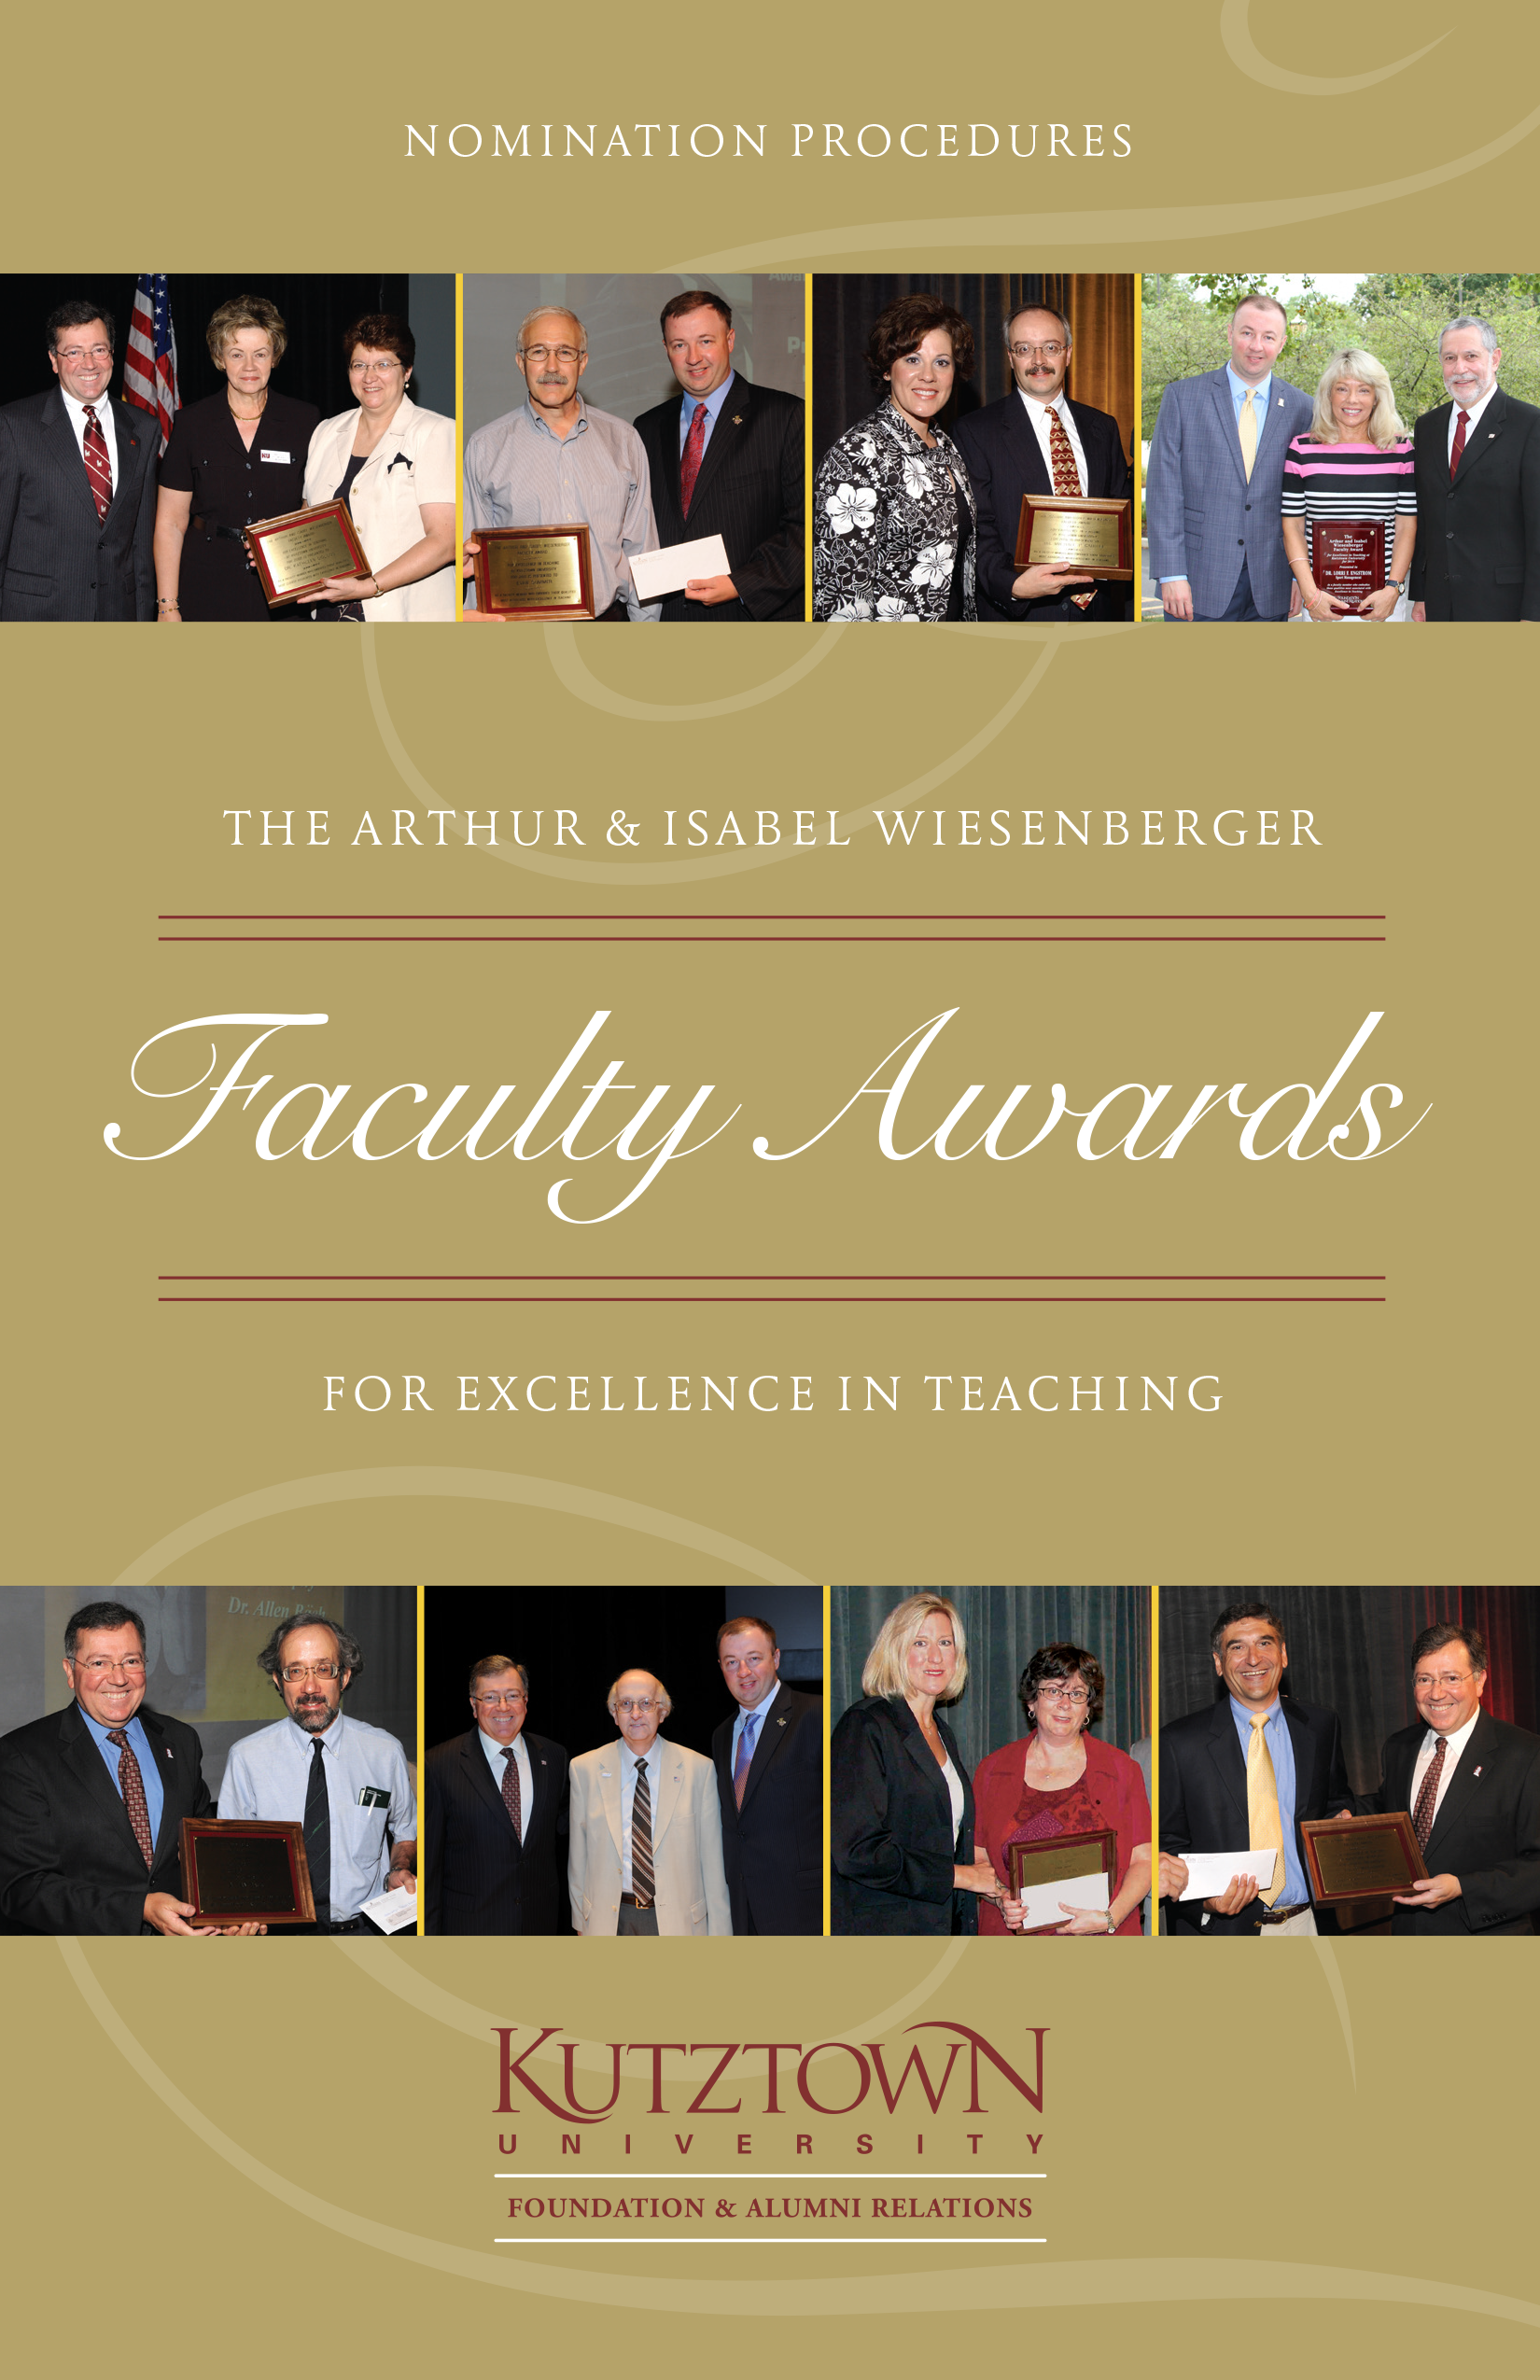 Arthur & Isabel Wiesenberger Faculty Awards for Excellence in Teaching